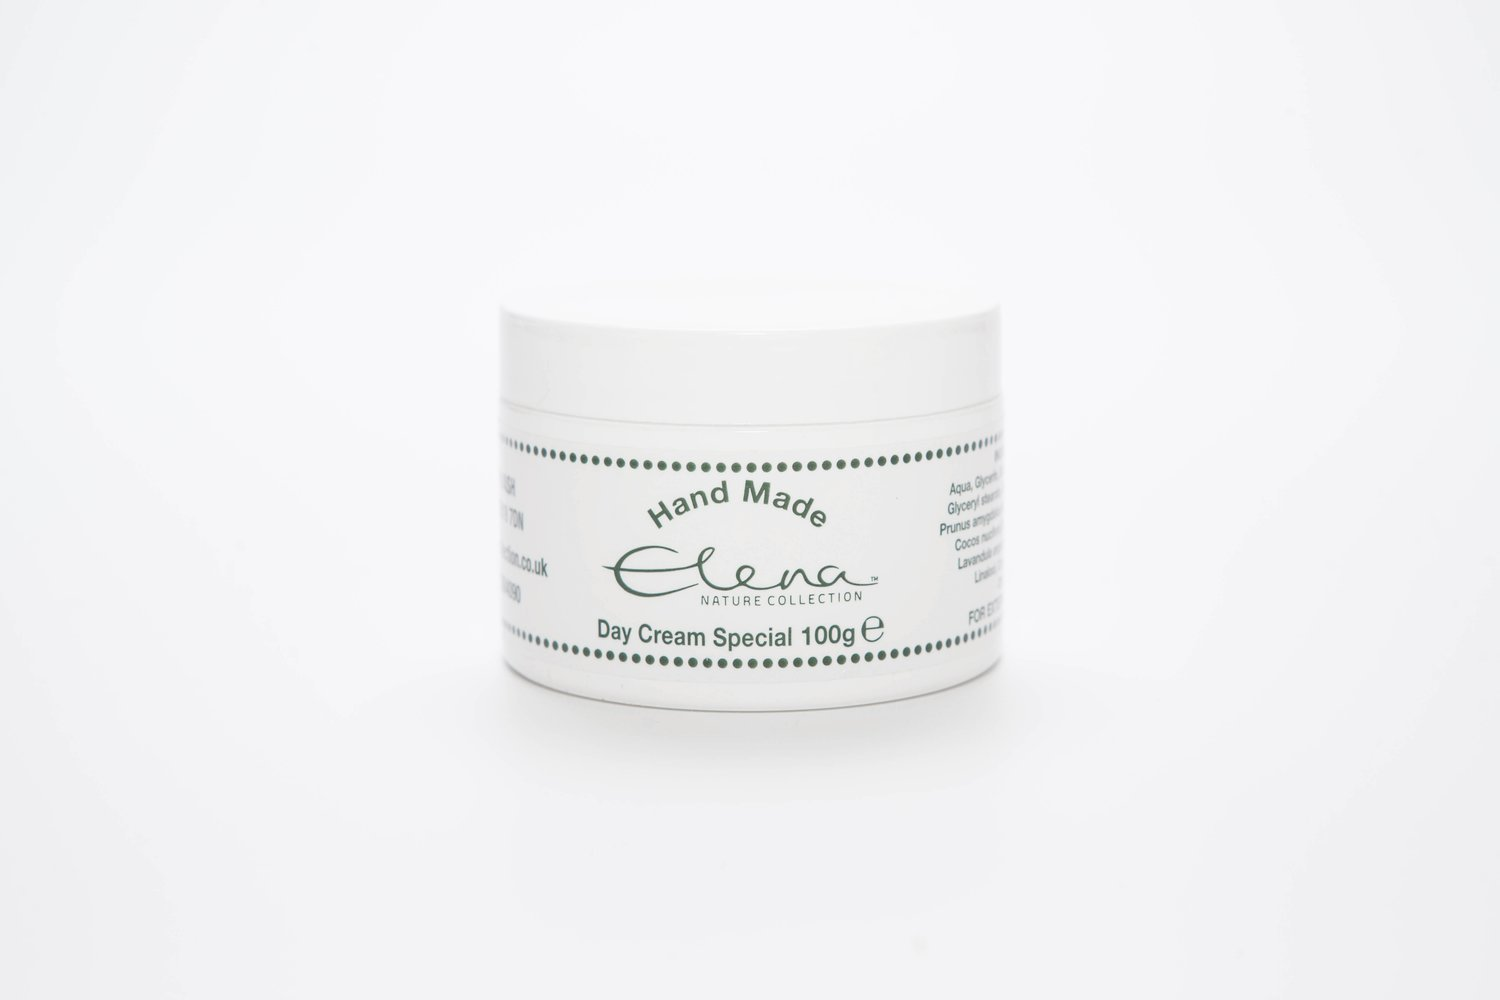 Day Cream Special with soothing lavender 100g